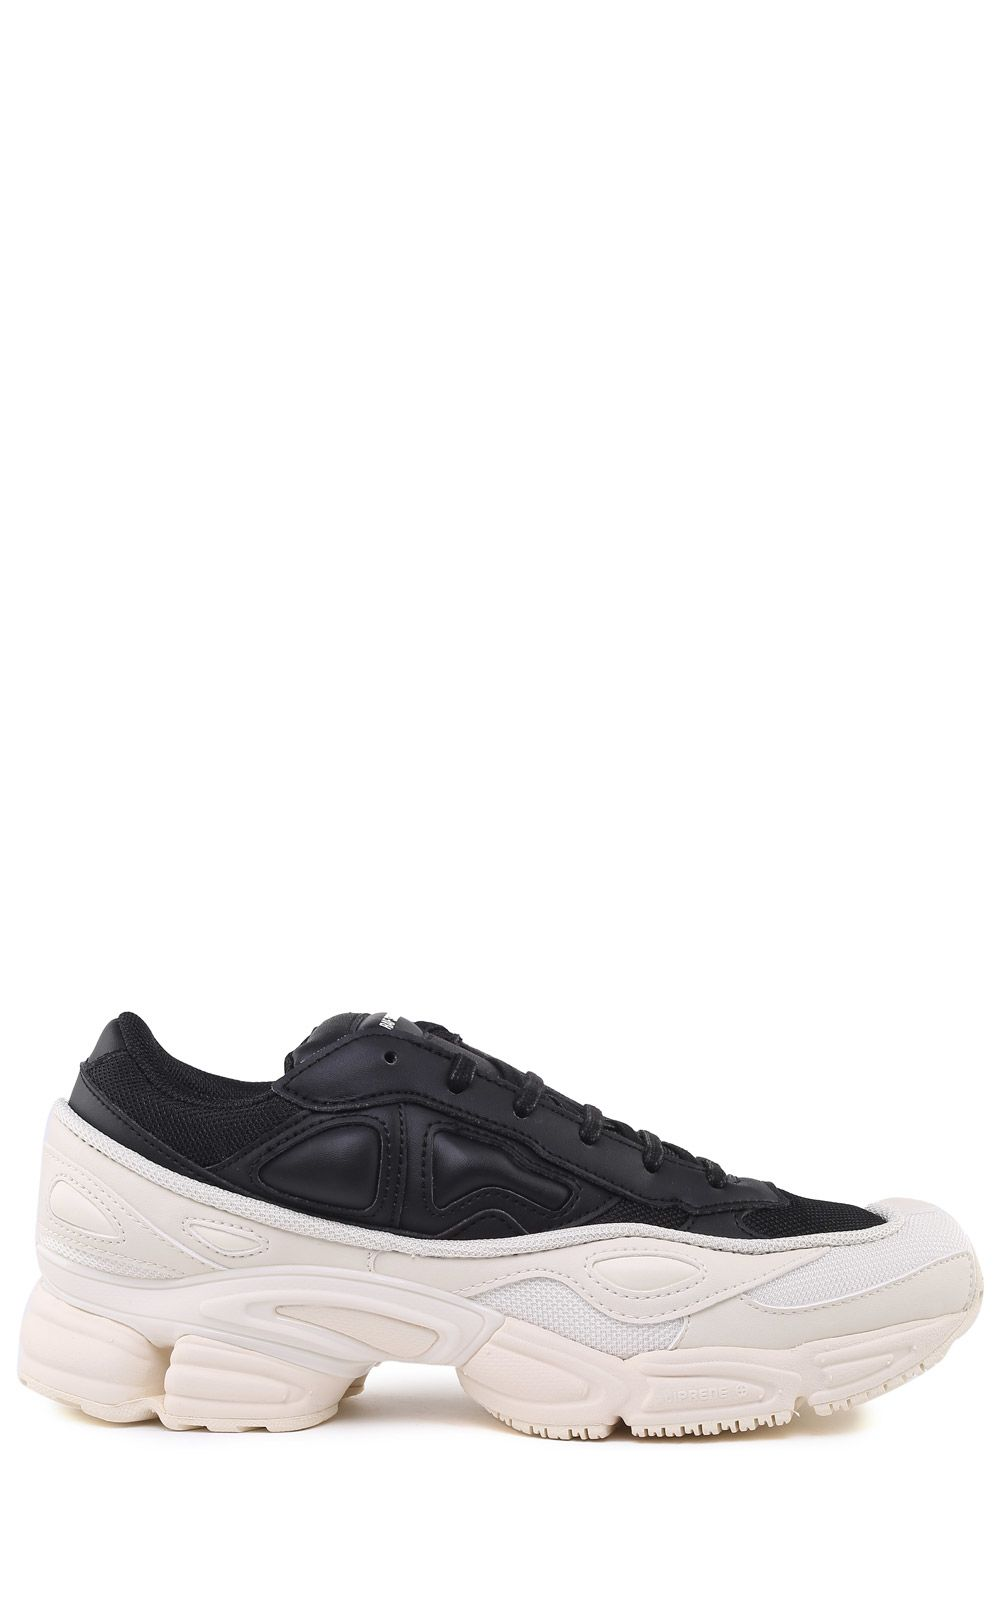 Ozweego Mesh And Leather Sneakers, Nero